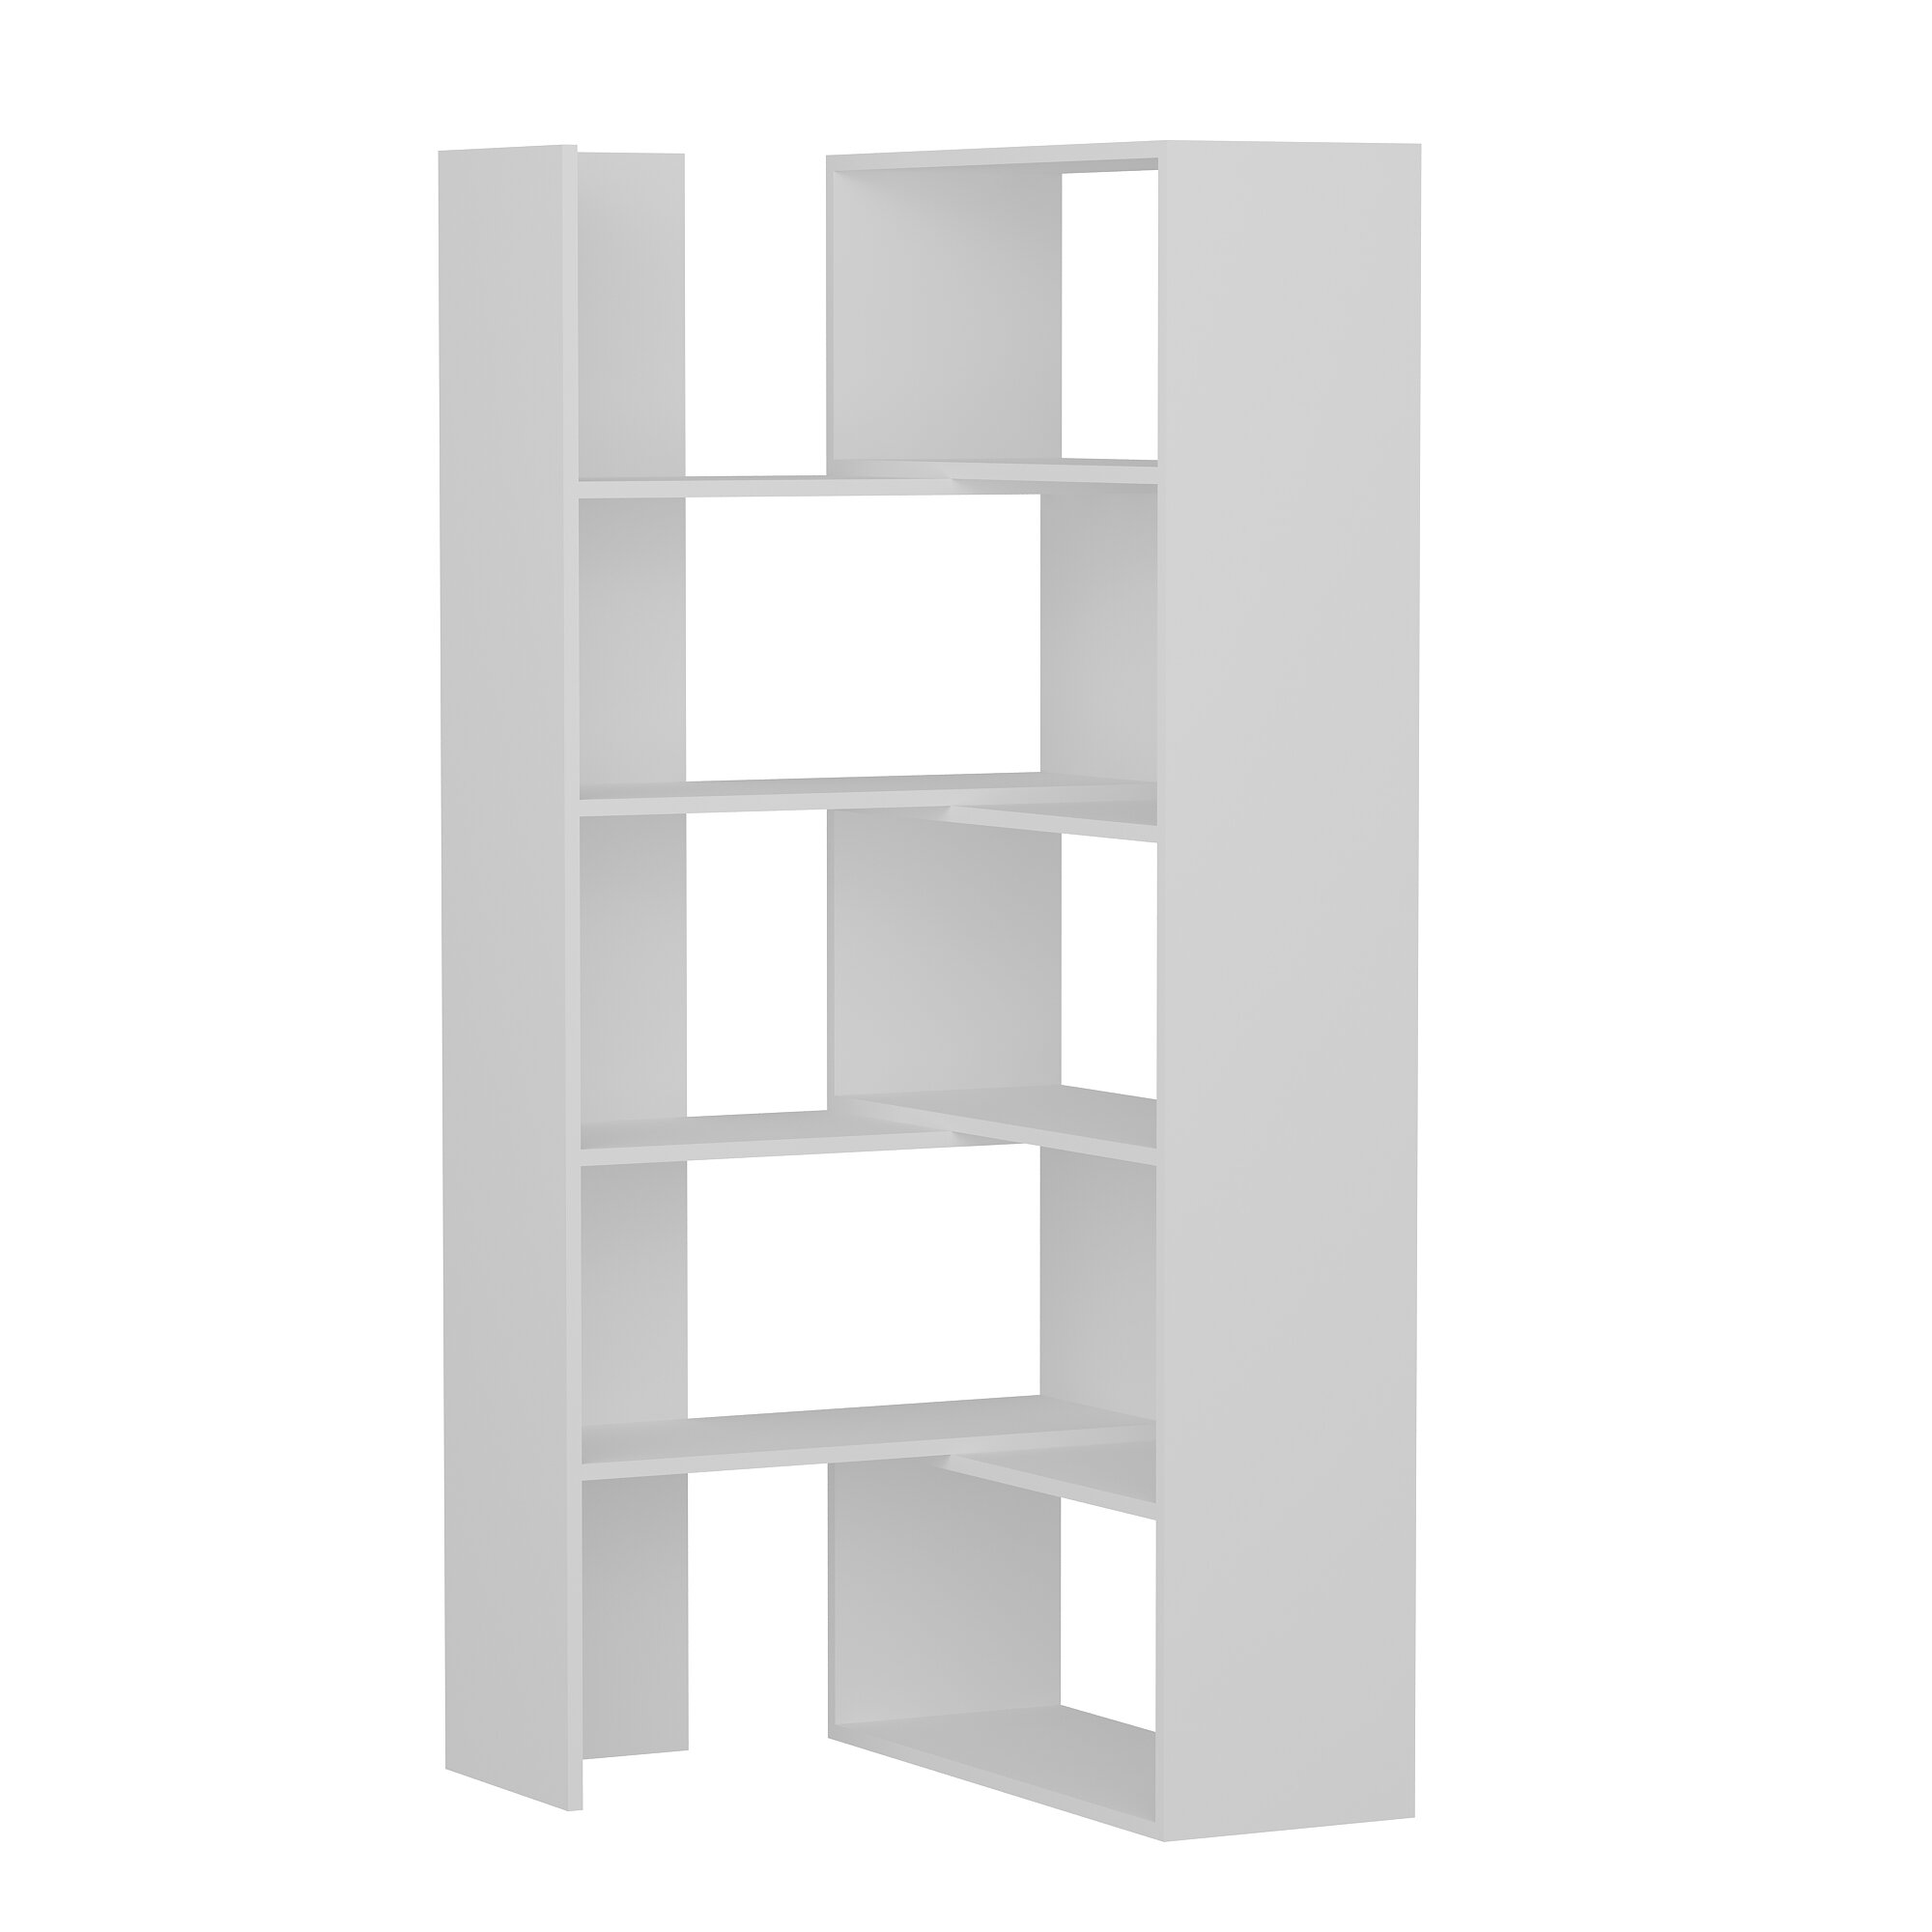 magically with bookshelf enchanting for leaning charming room decor ideas monarch furniture corner bookcases design specialties ladder classic ikea barn bookcase decoration beautify interior small black home inspiring your